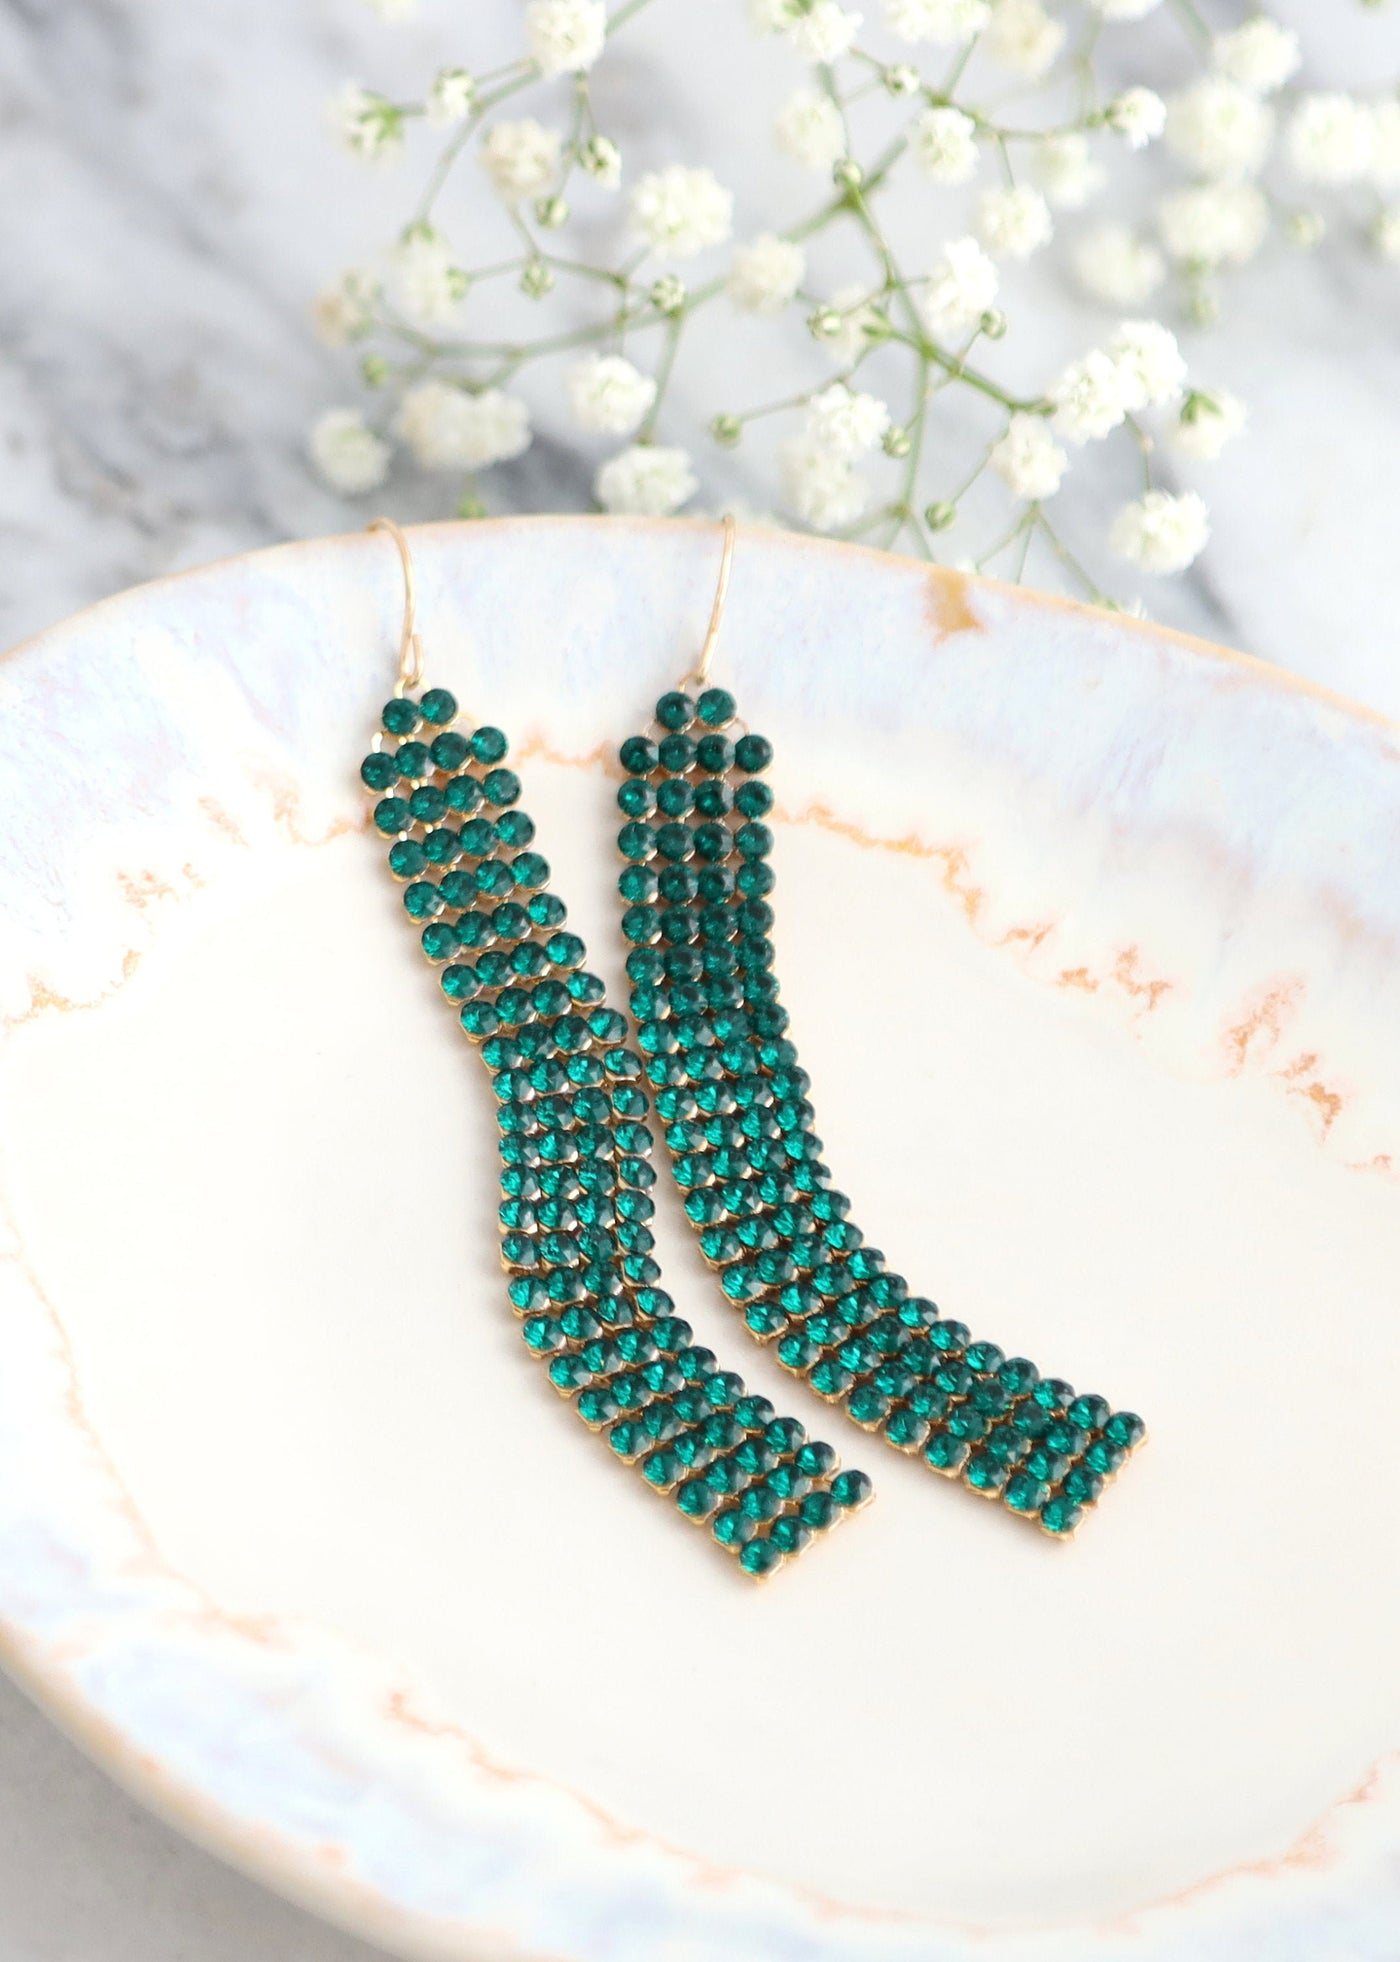 Emerald Long Earrings, Emerald Green Dangle Earrings, Green Mash Crystal Earrings, Bridal Crystal Swarovski Earrings, Emerald Gold Earrings